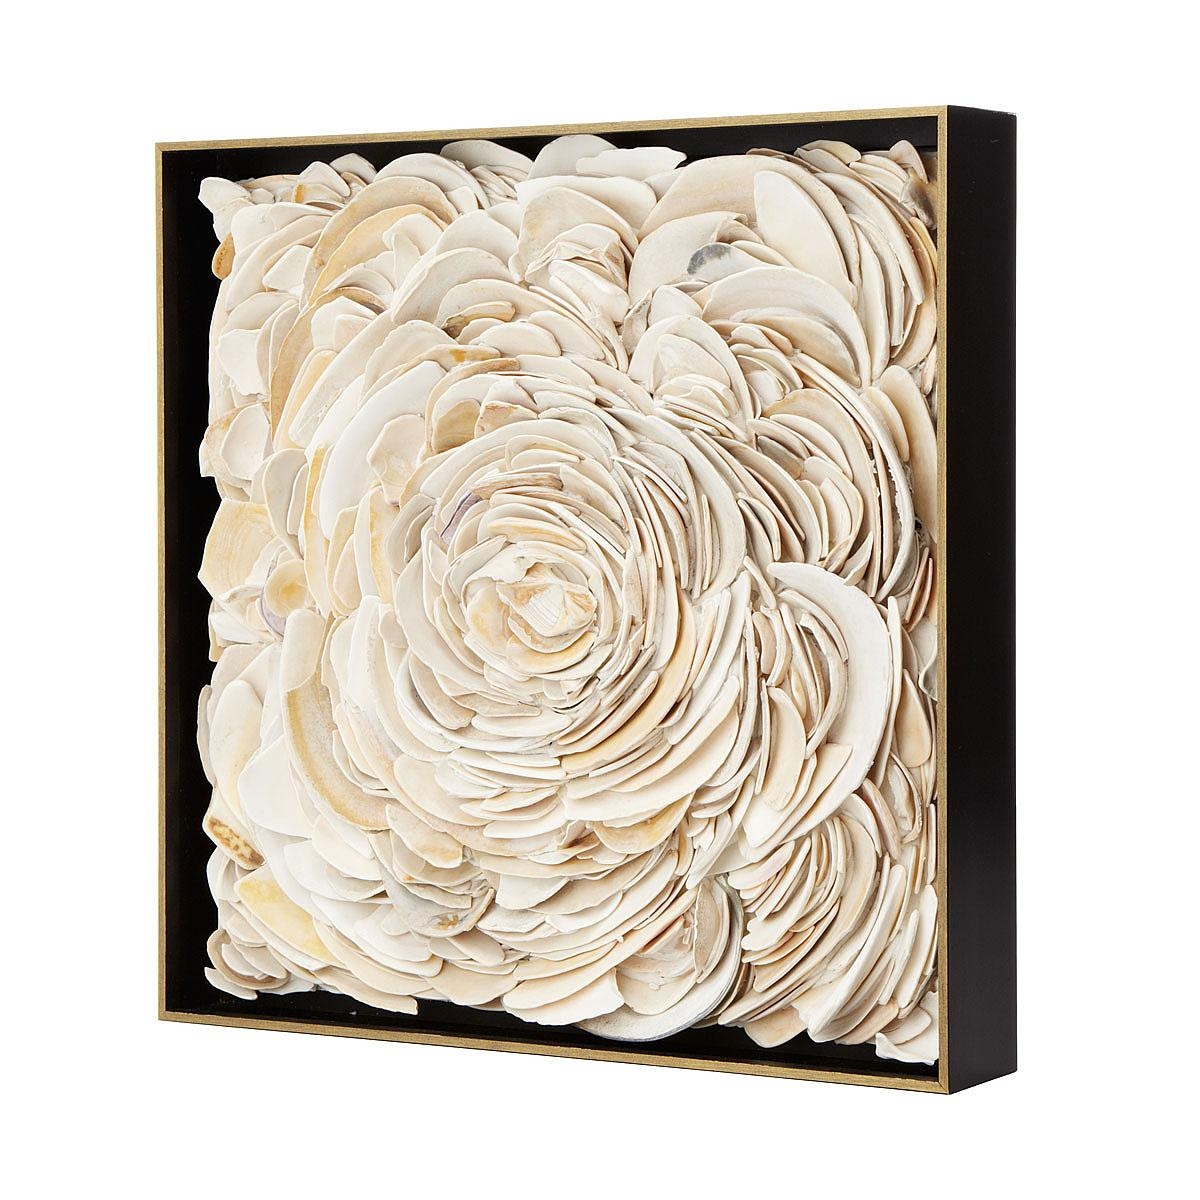 Featured Image of Wall Art With Seashells